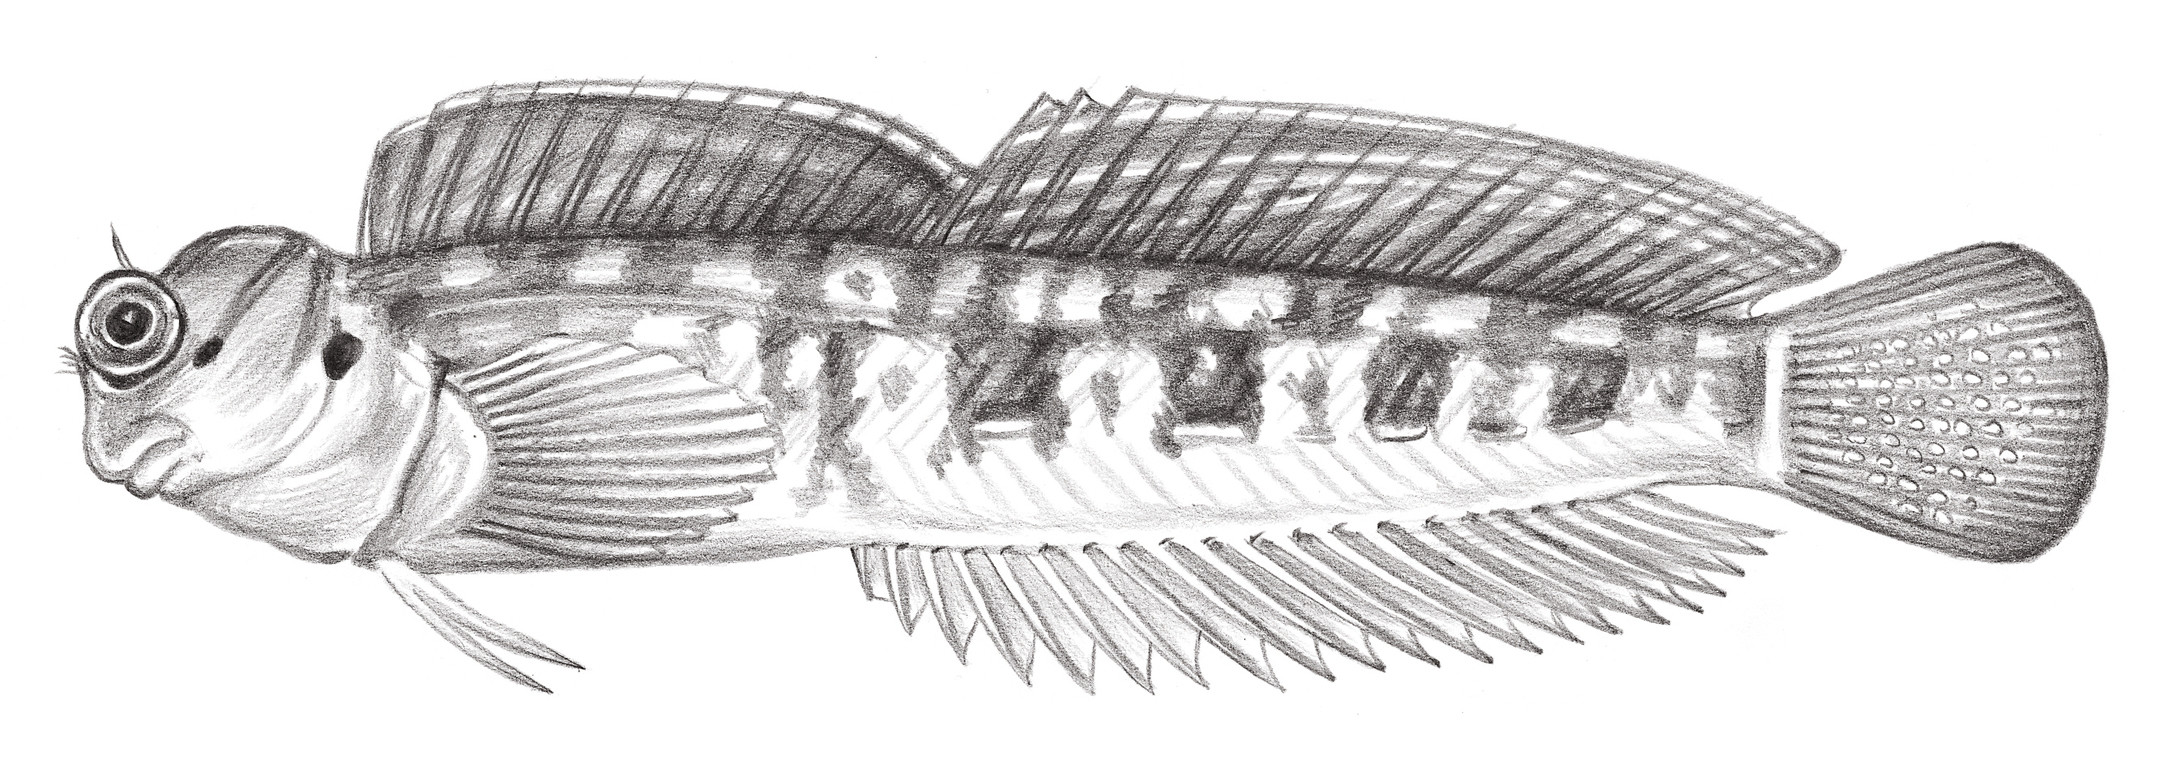 1947.	斷紋動齒鳚 Blenniella interrupta (Bleeker, 1857)